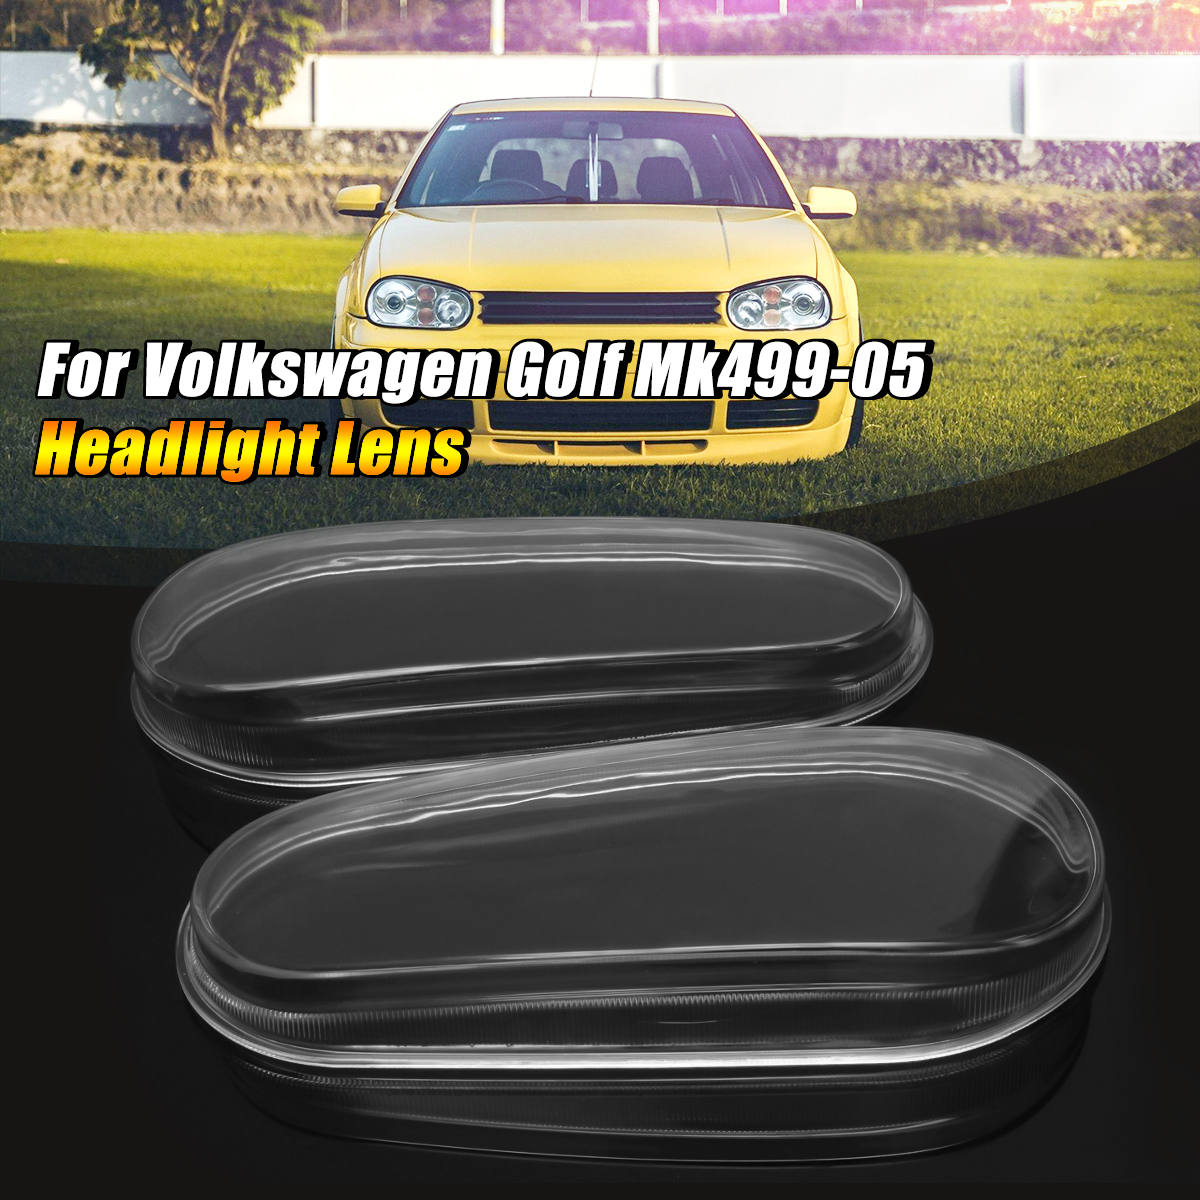 Car Glass Lens Headlight Lamp Housing Cover For VW MK4 Golf GTI R32 1999 2000 2001 2002 2003 2004 2005